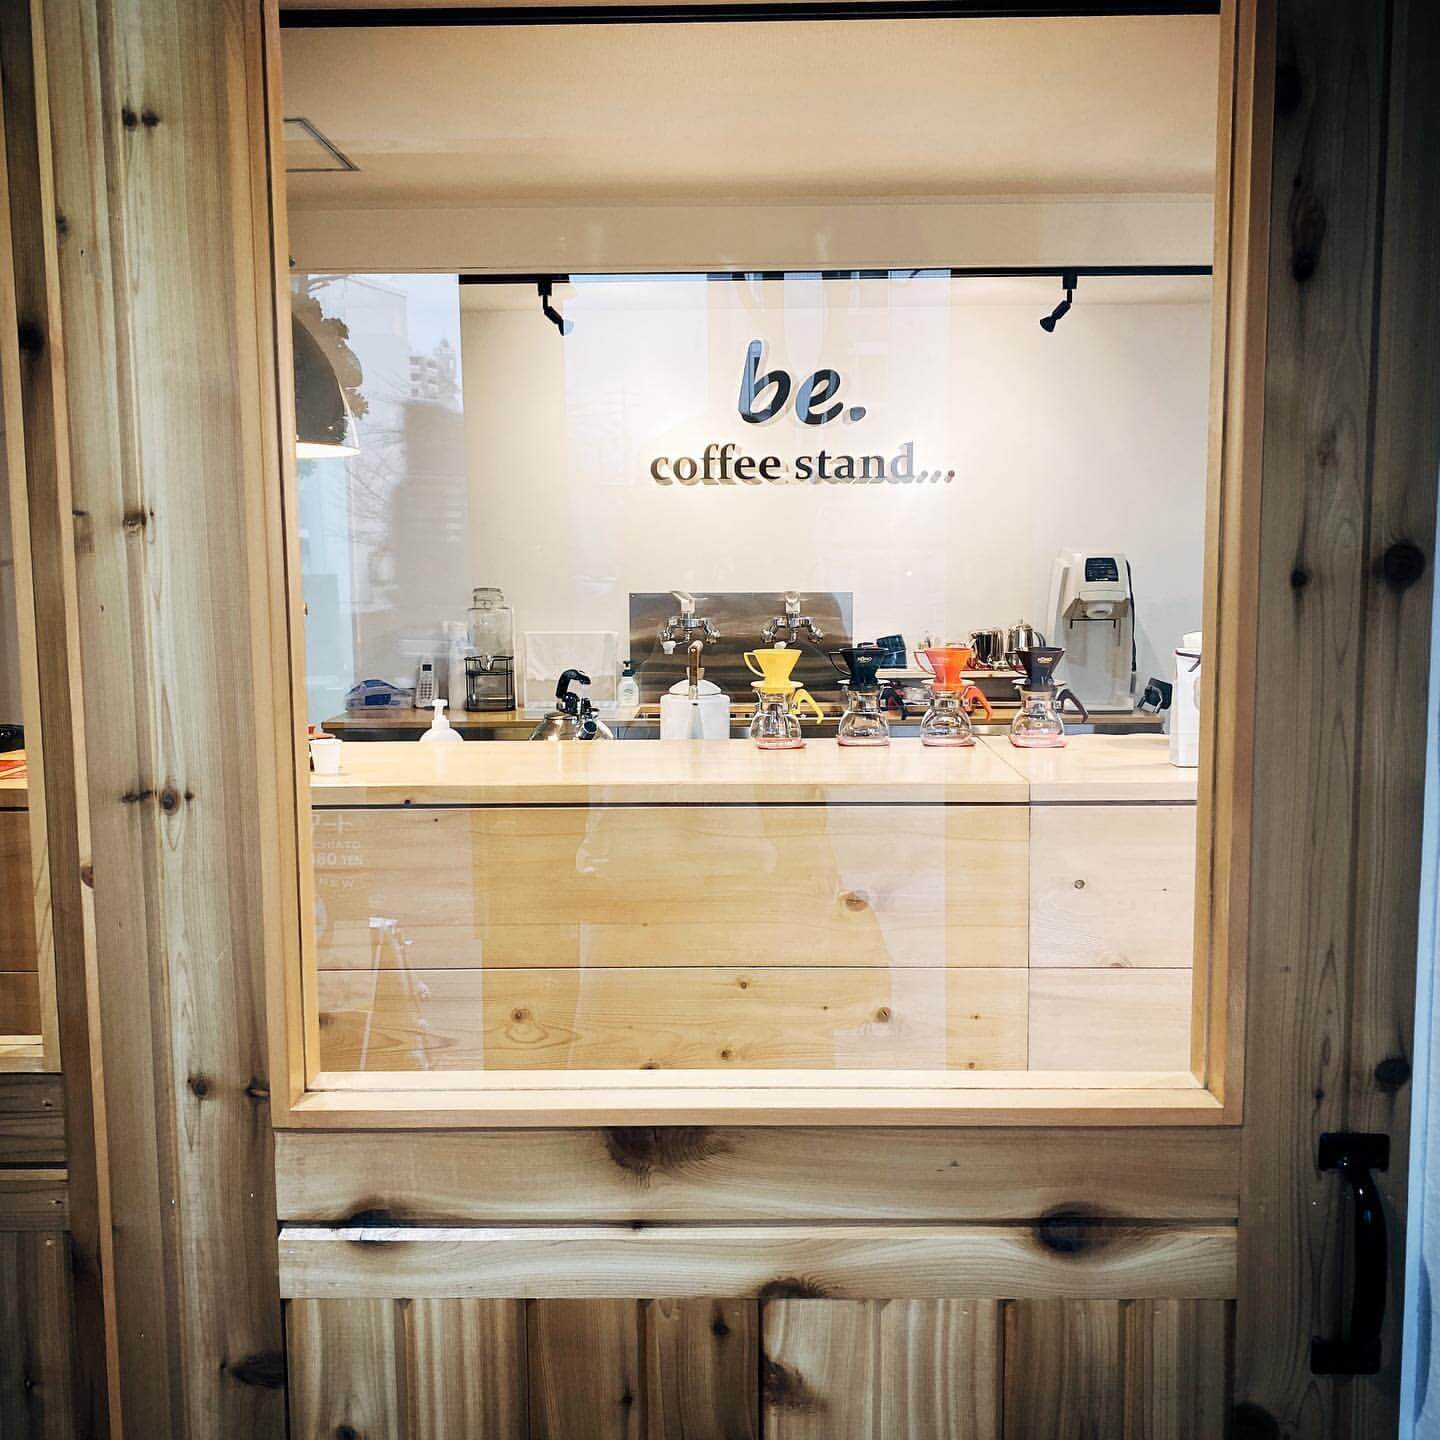 be.coffee stand...(ビーコーヒースタンド)の店内